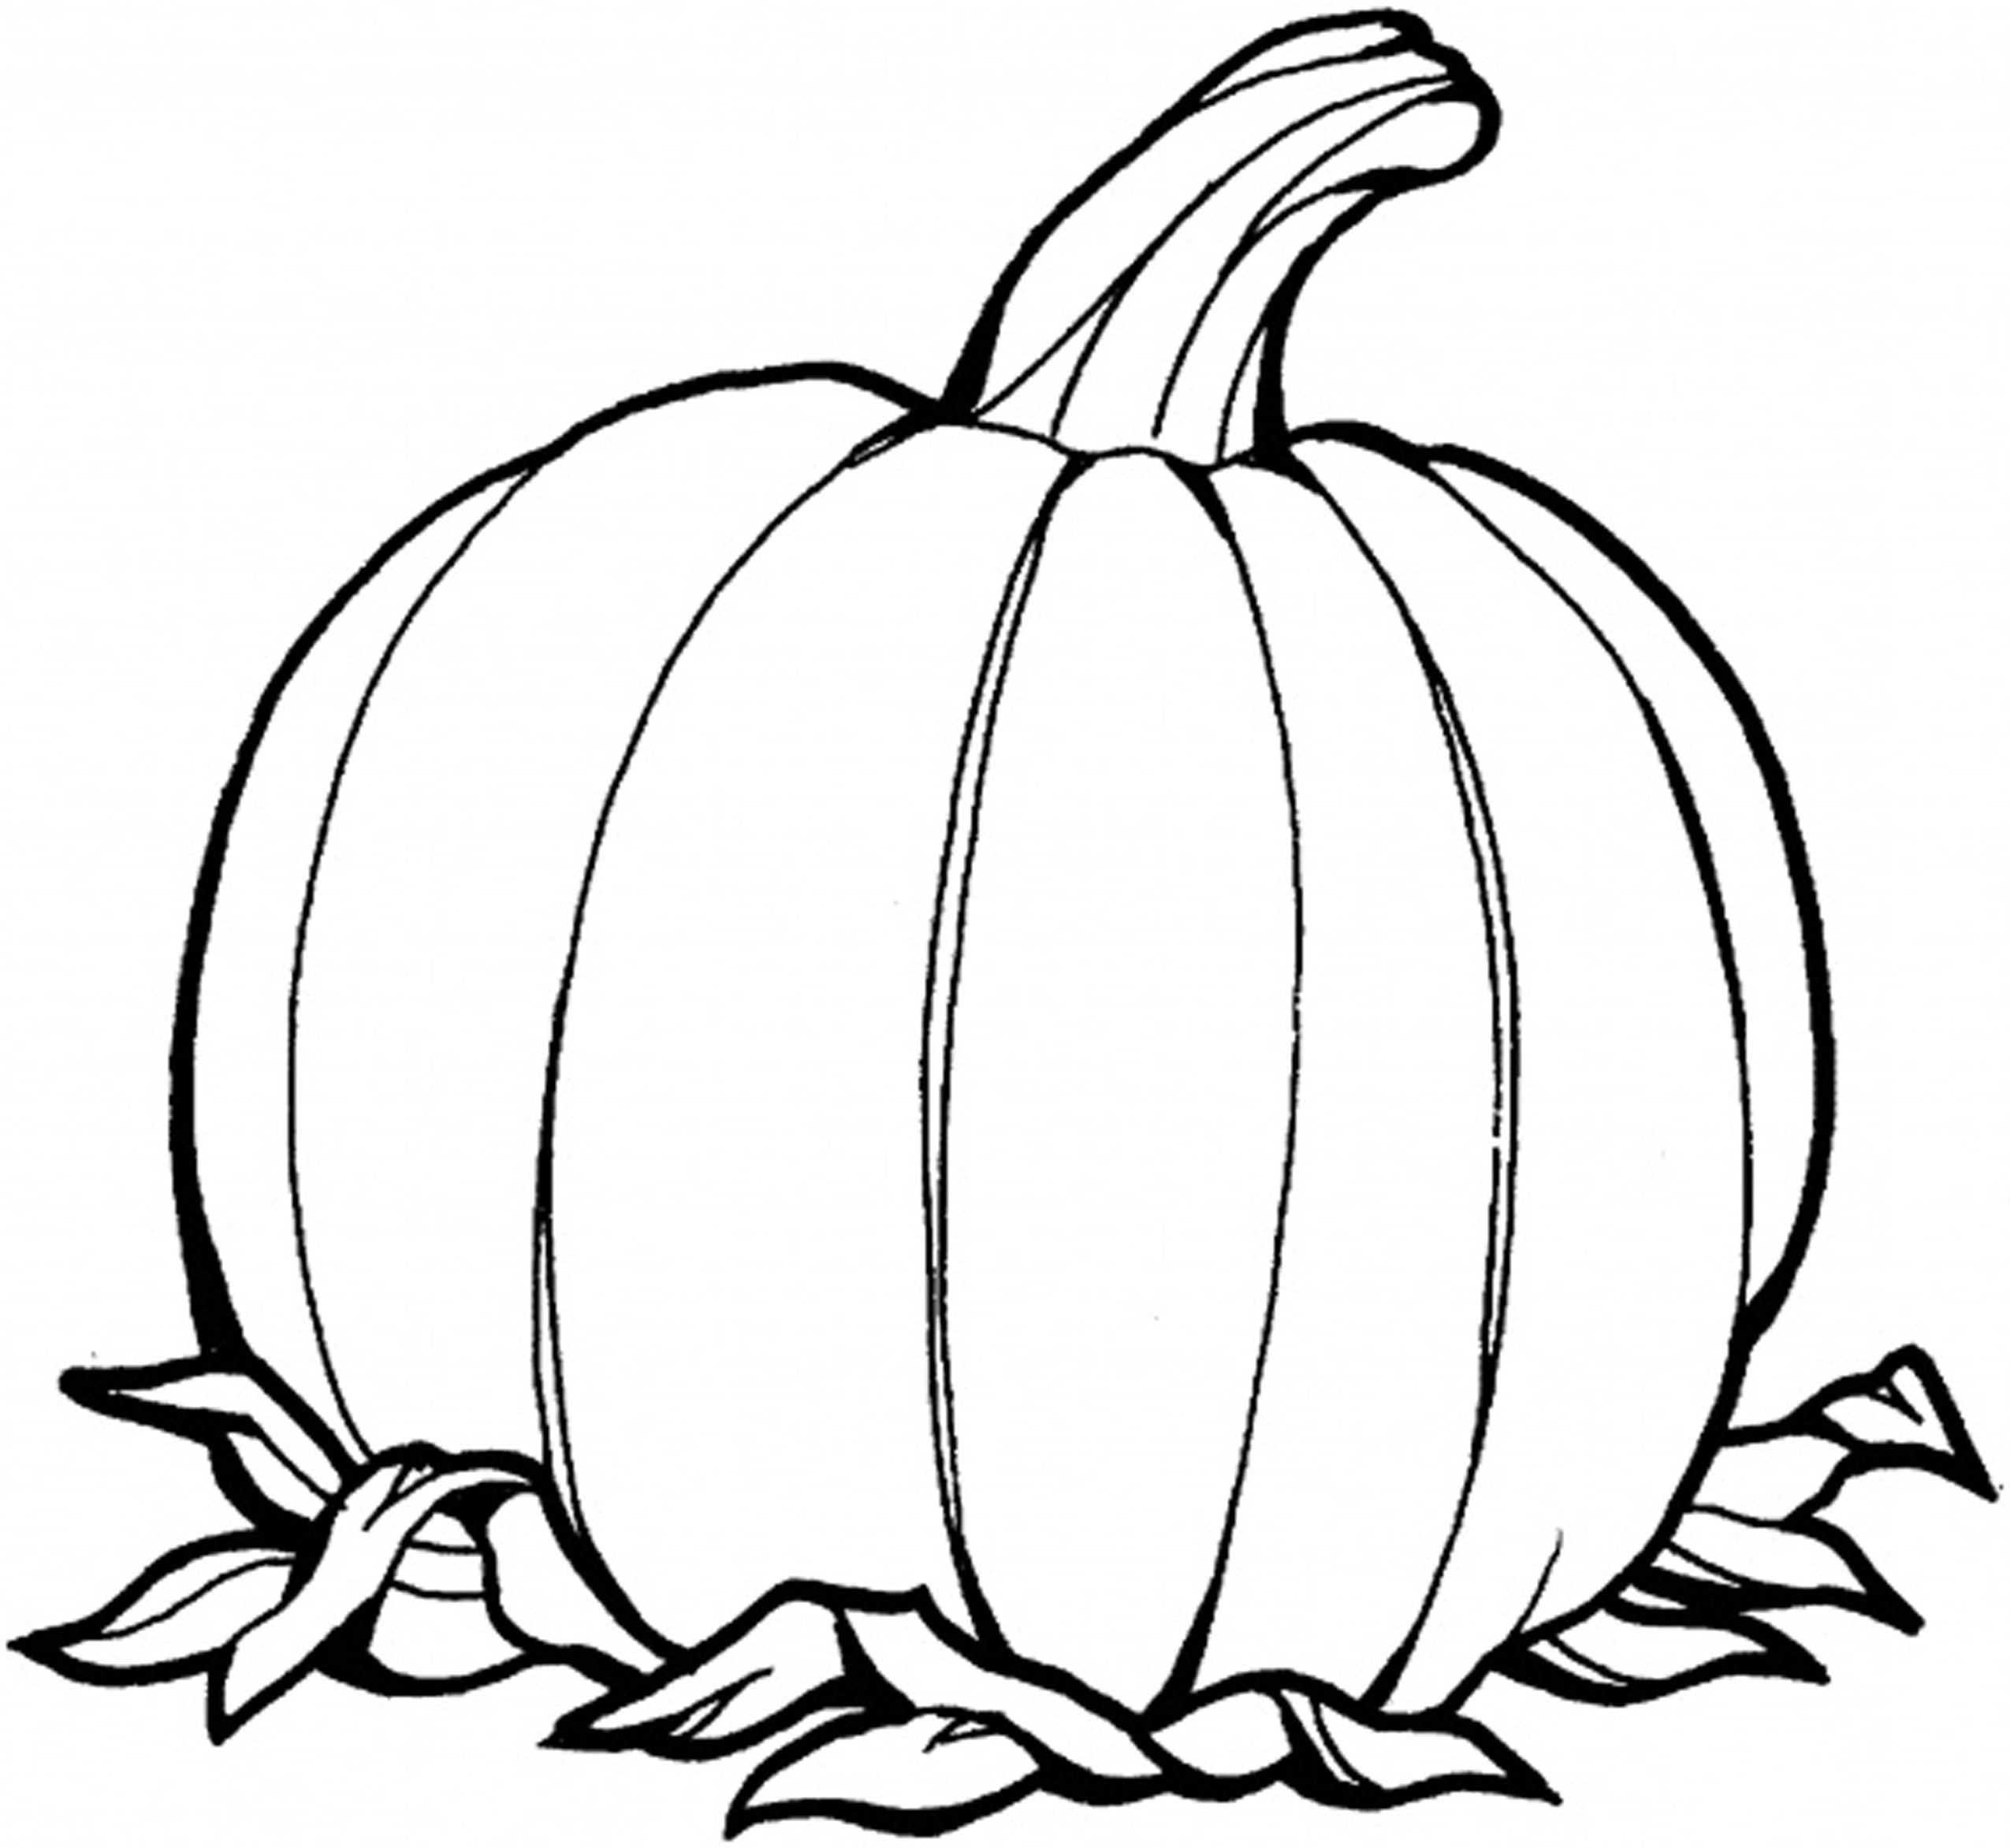 printable pumpkin pictures free printable pumpkin coloring pages for kids cool2bkids pictures printable pumpkin